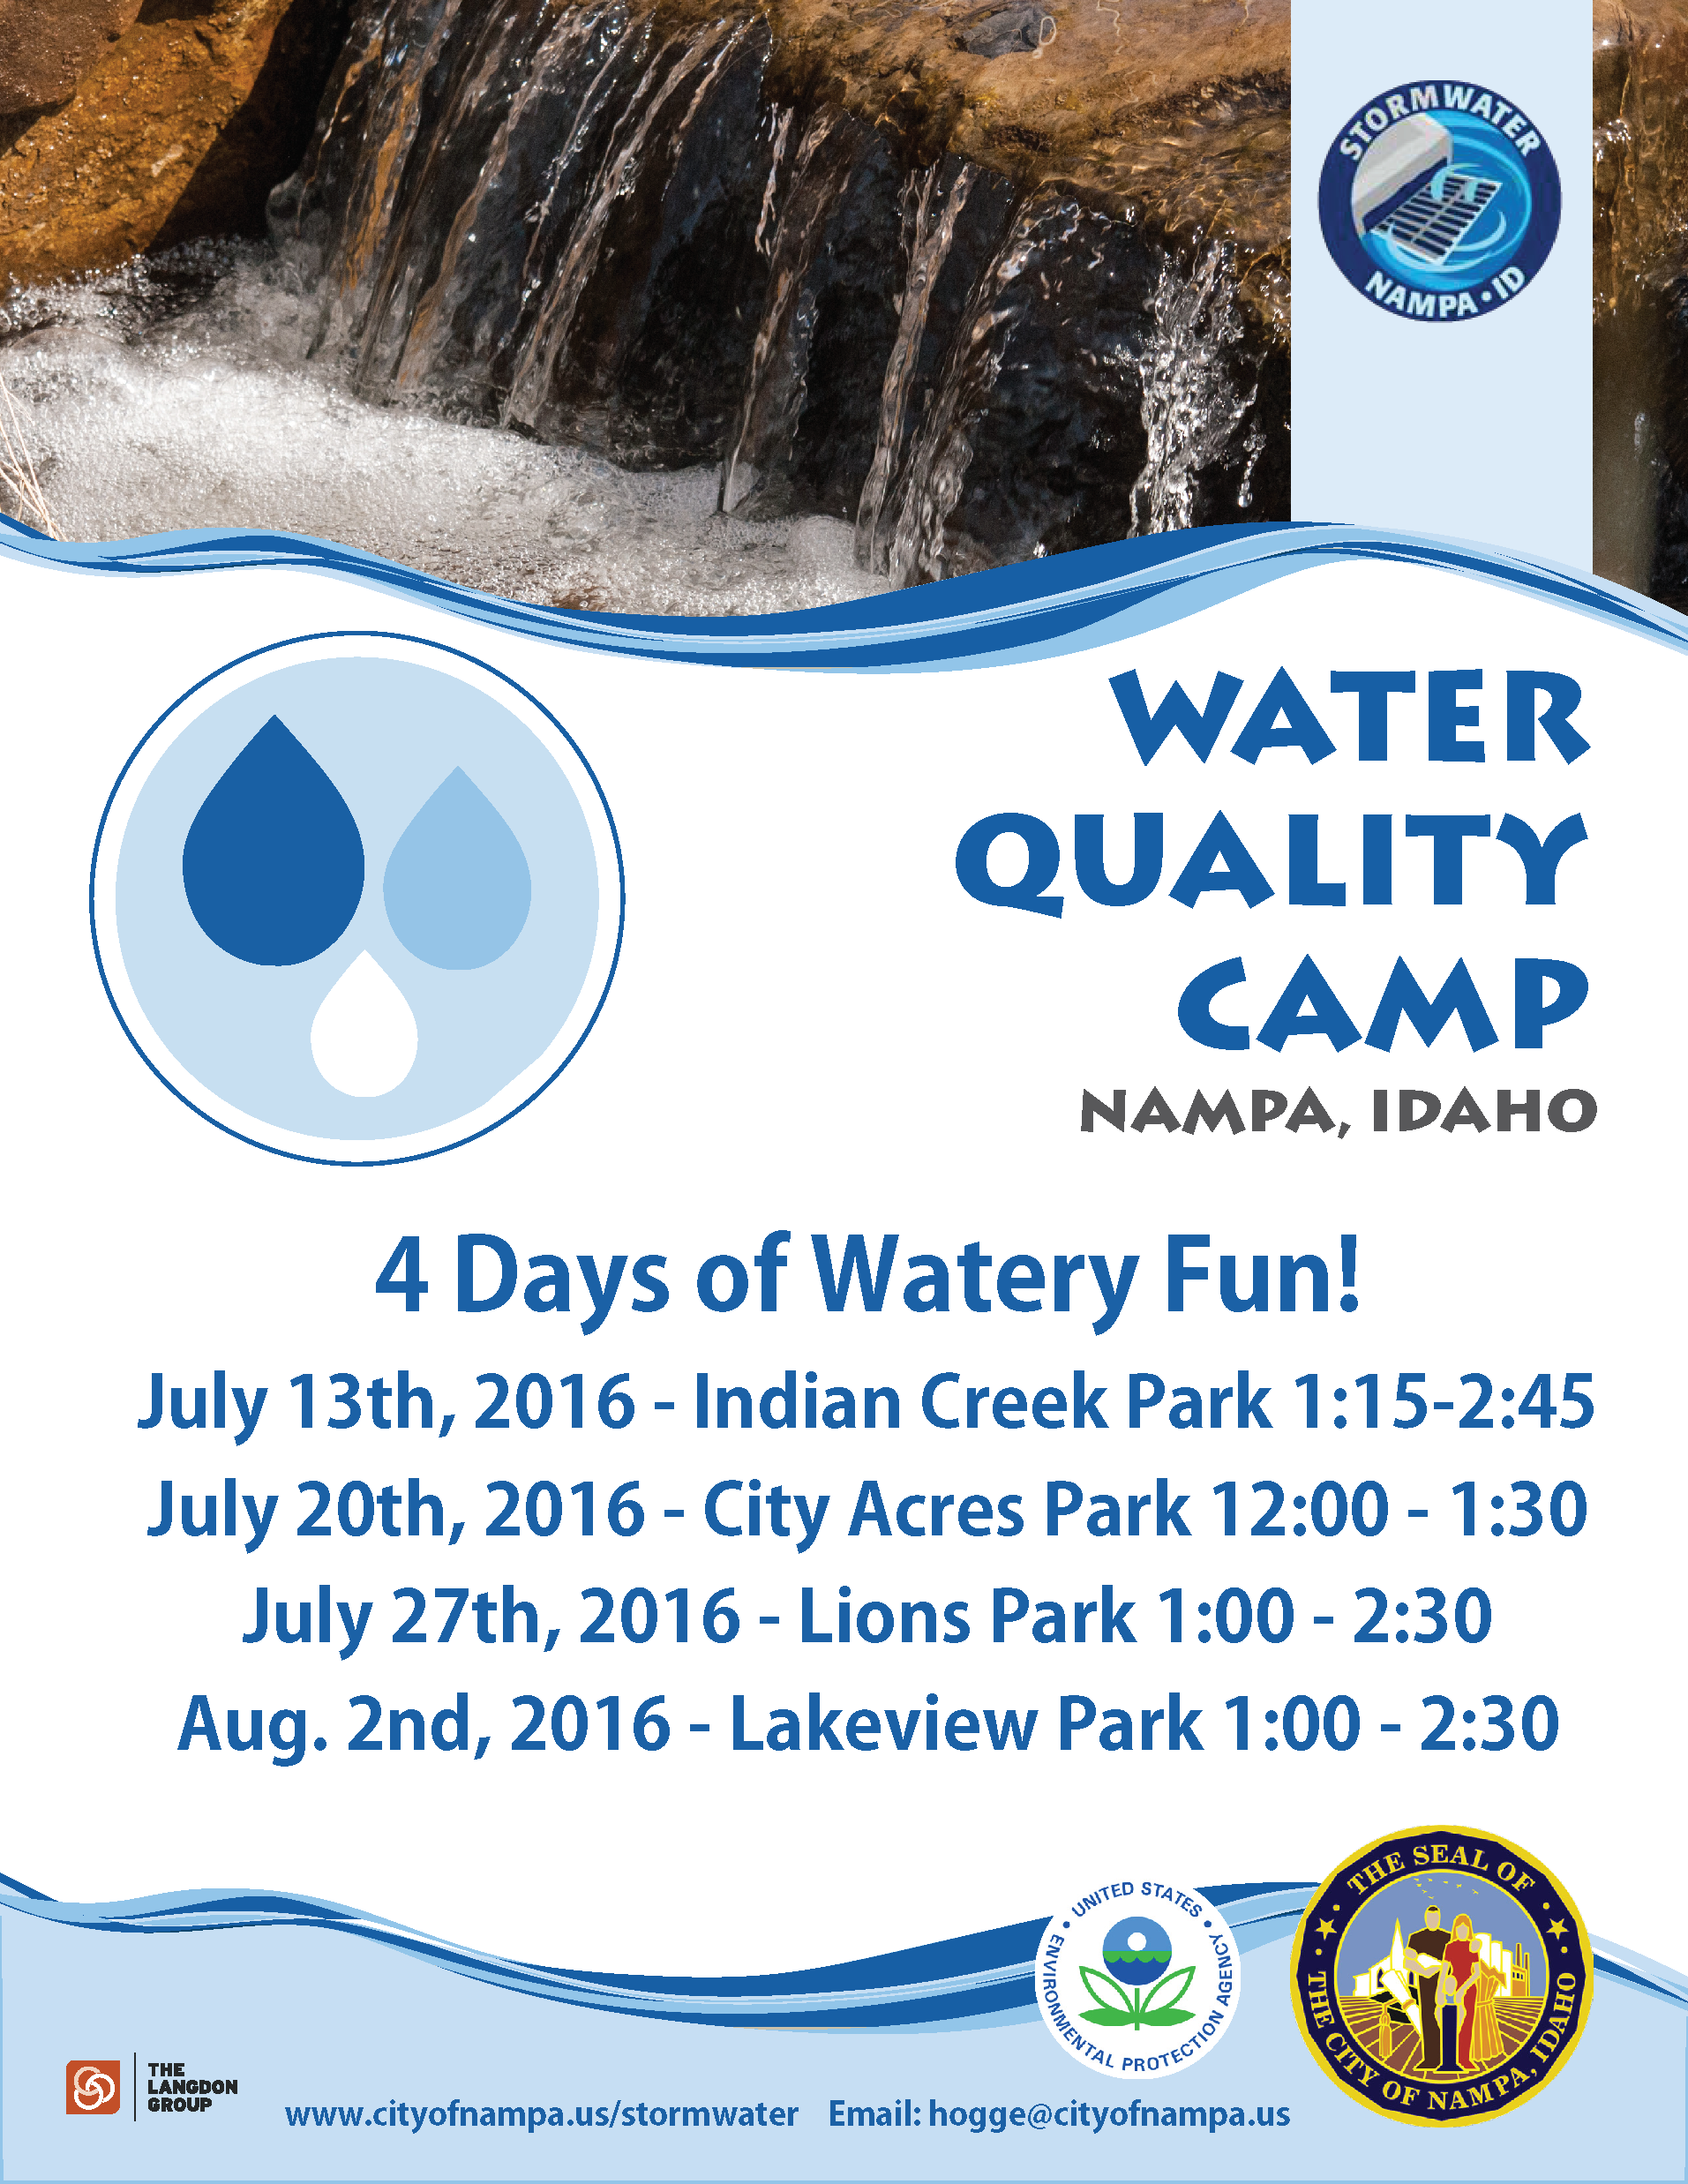 Nampa water quality camp flier only.png